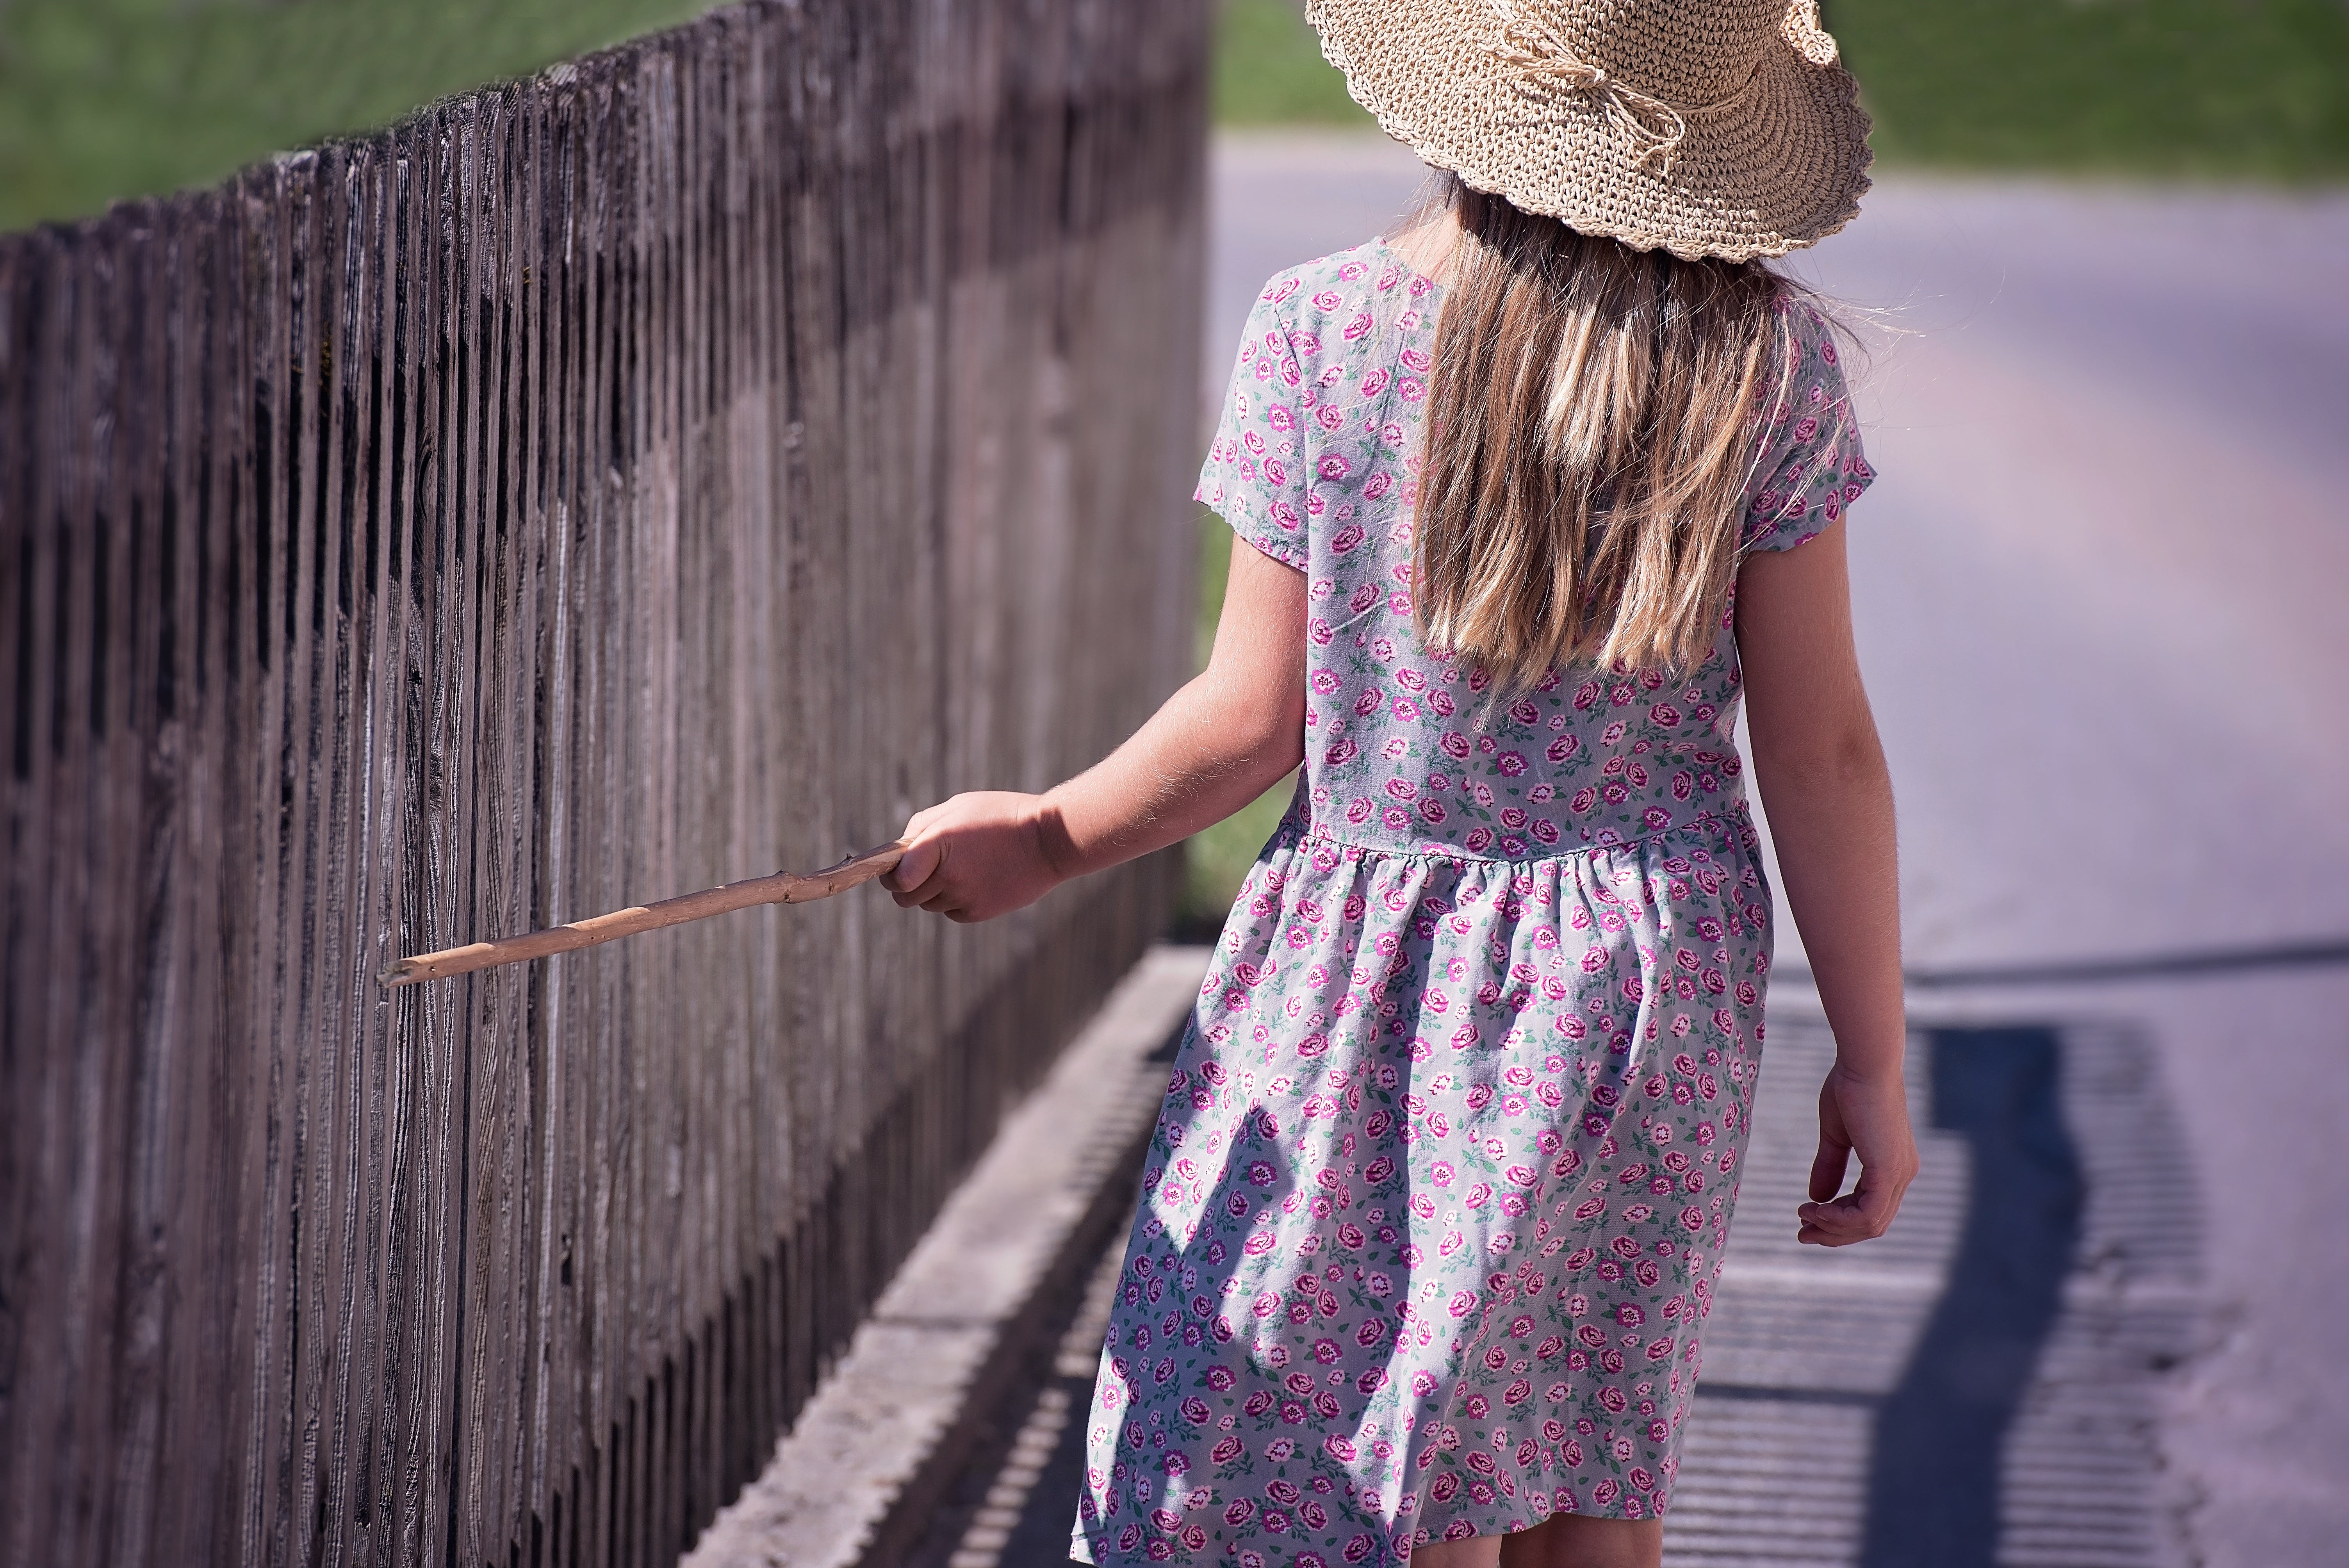 Free stock photo of person, summer, girl, hat